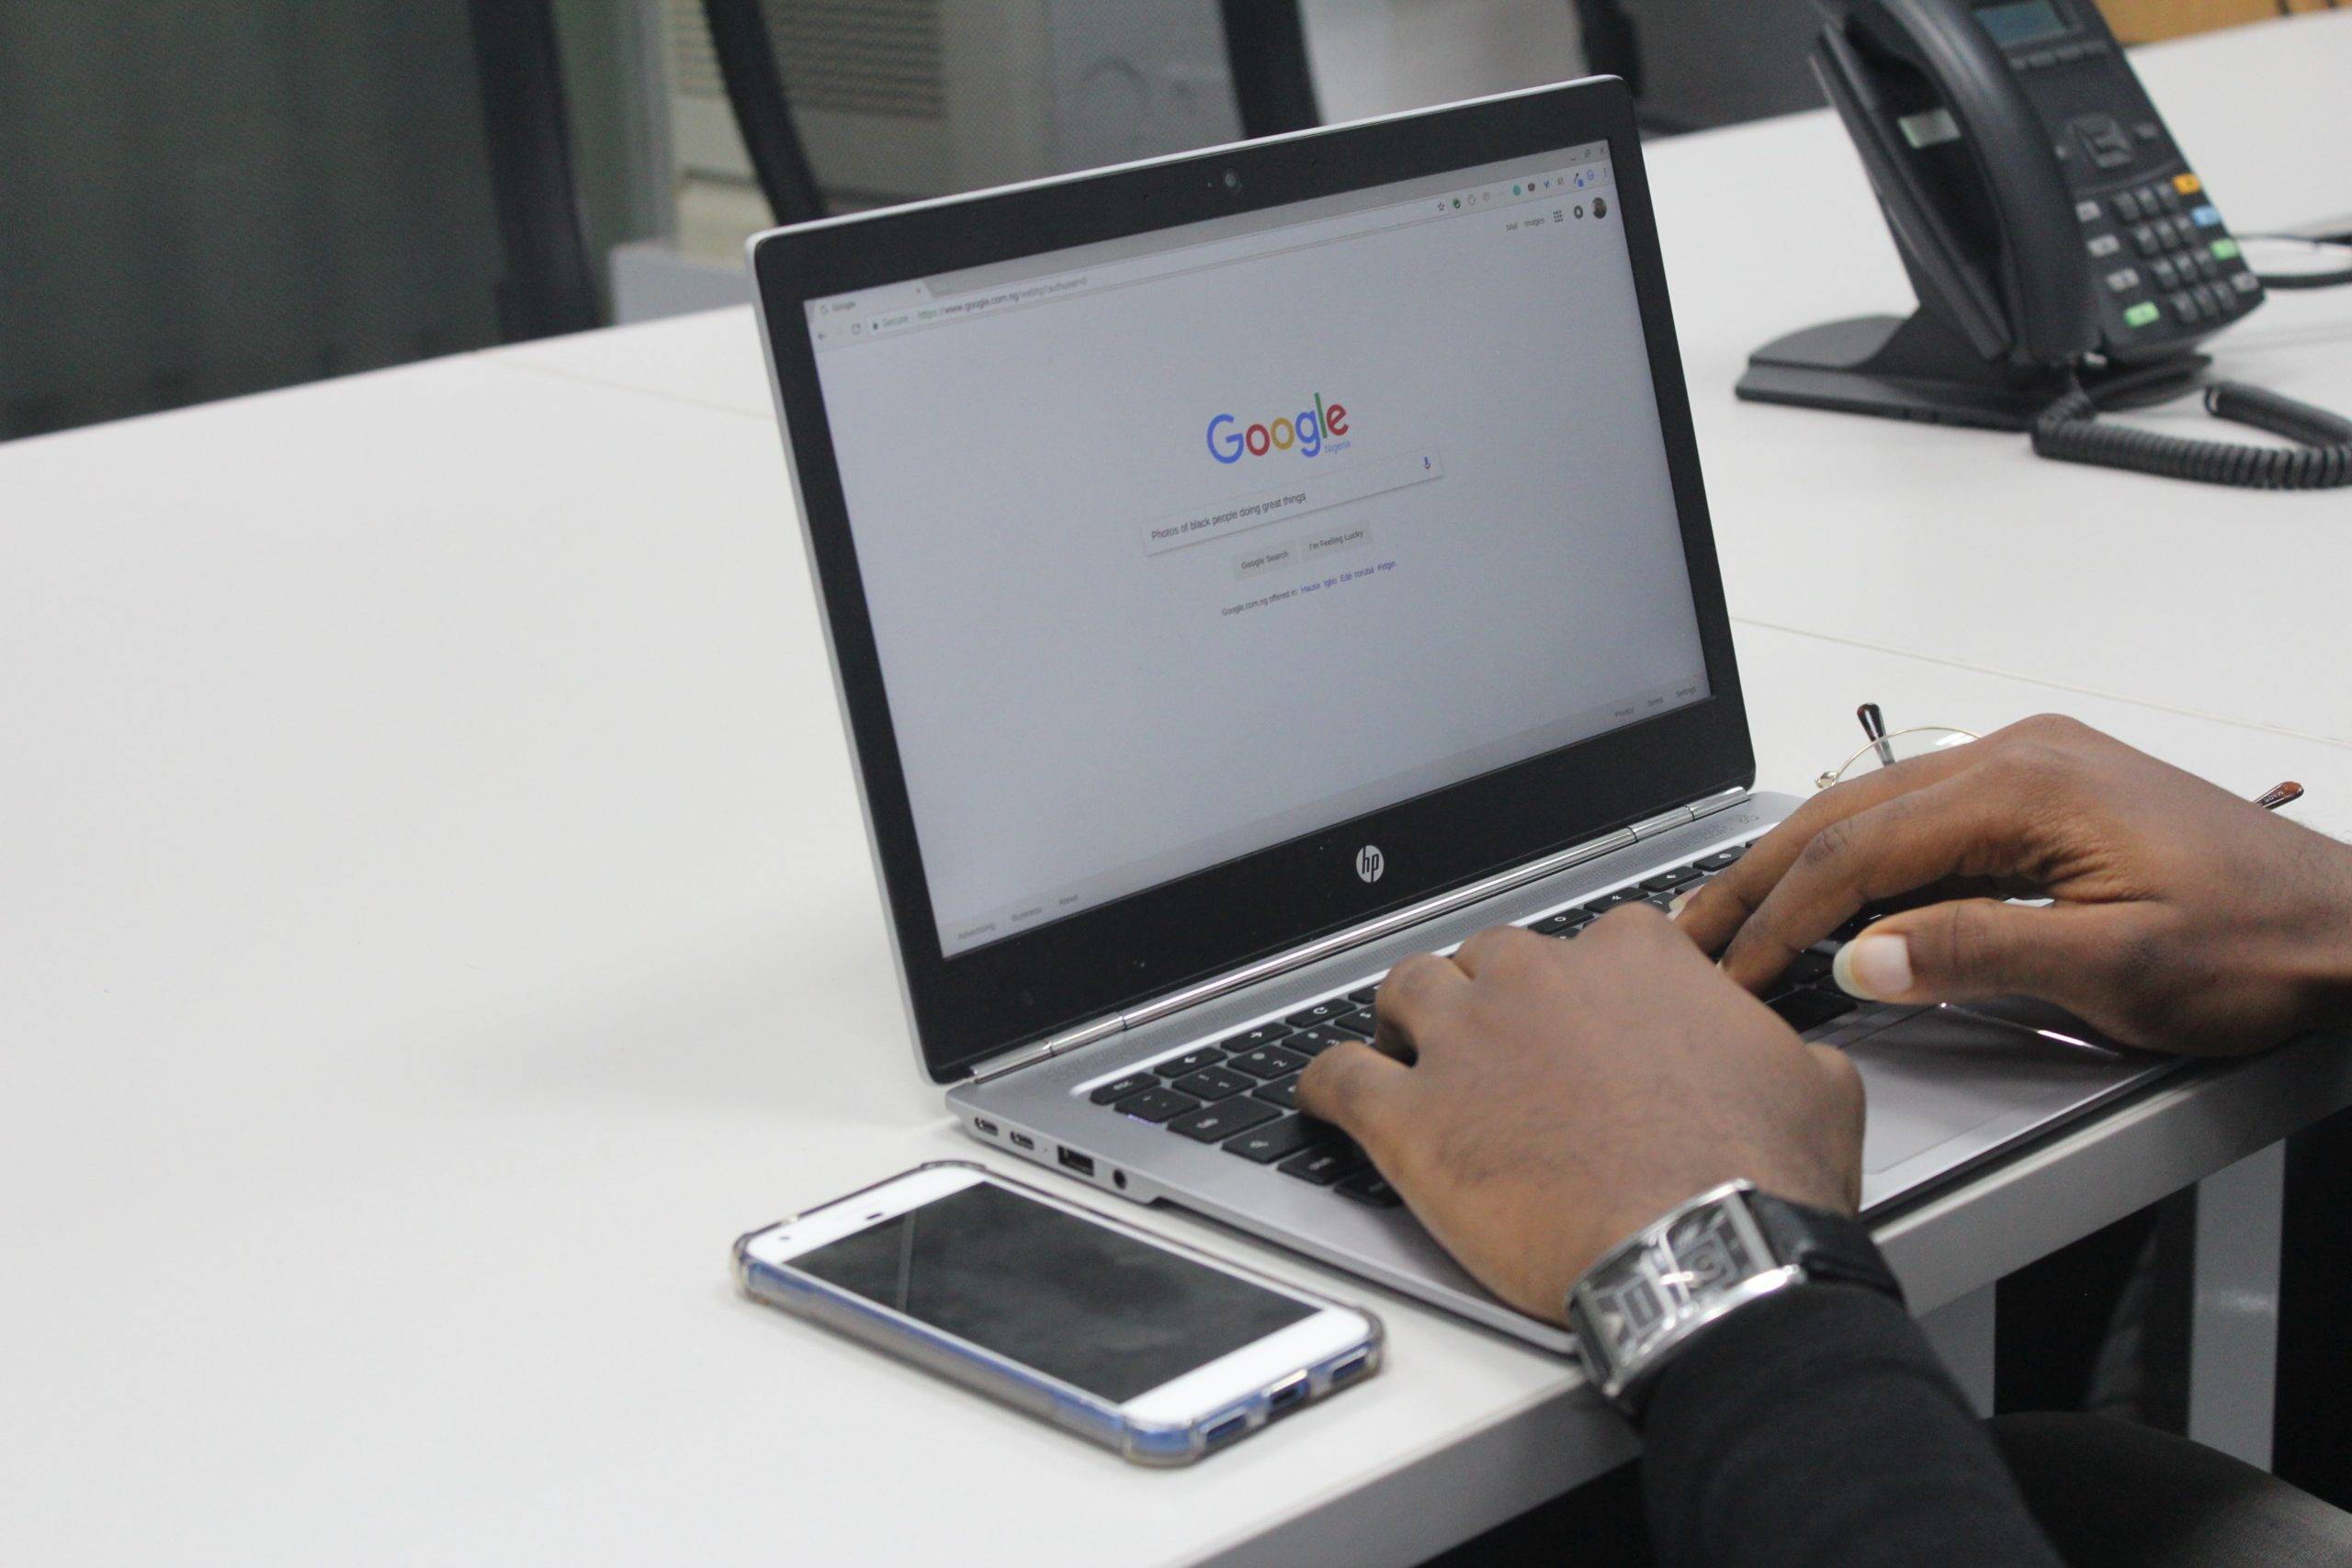 person searching on Google